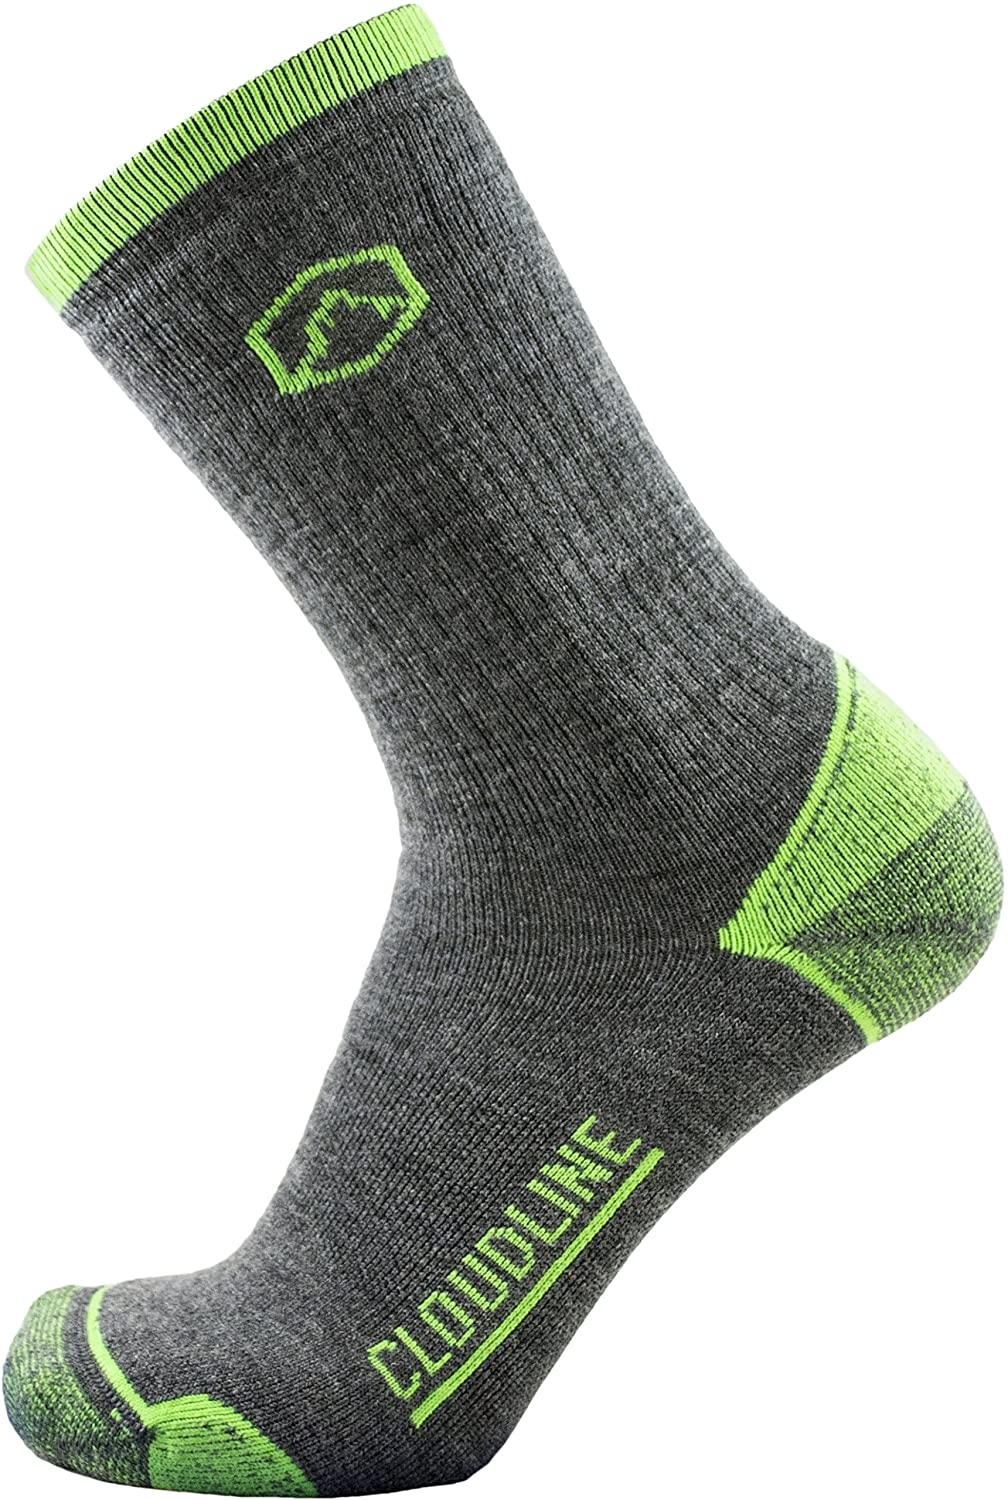 CloudLine Merino Wool Hiking & Trekking Crew Socks - Light Cushion - Made in USA